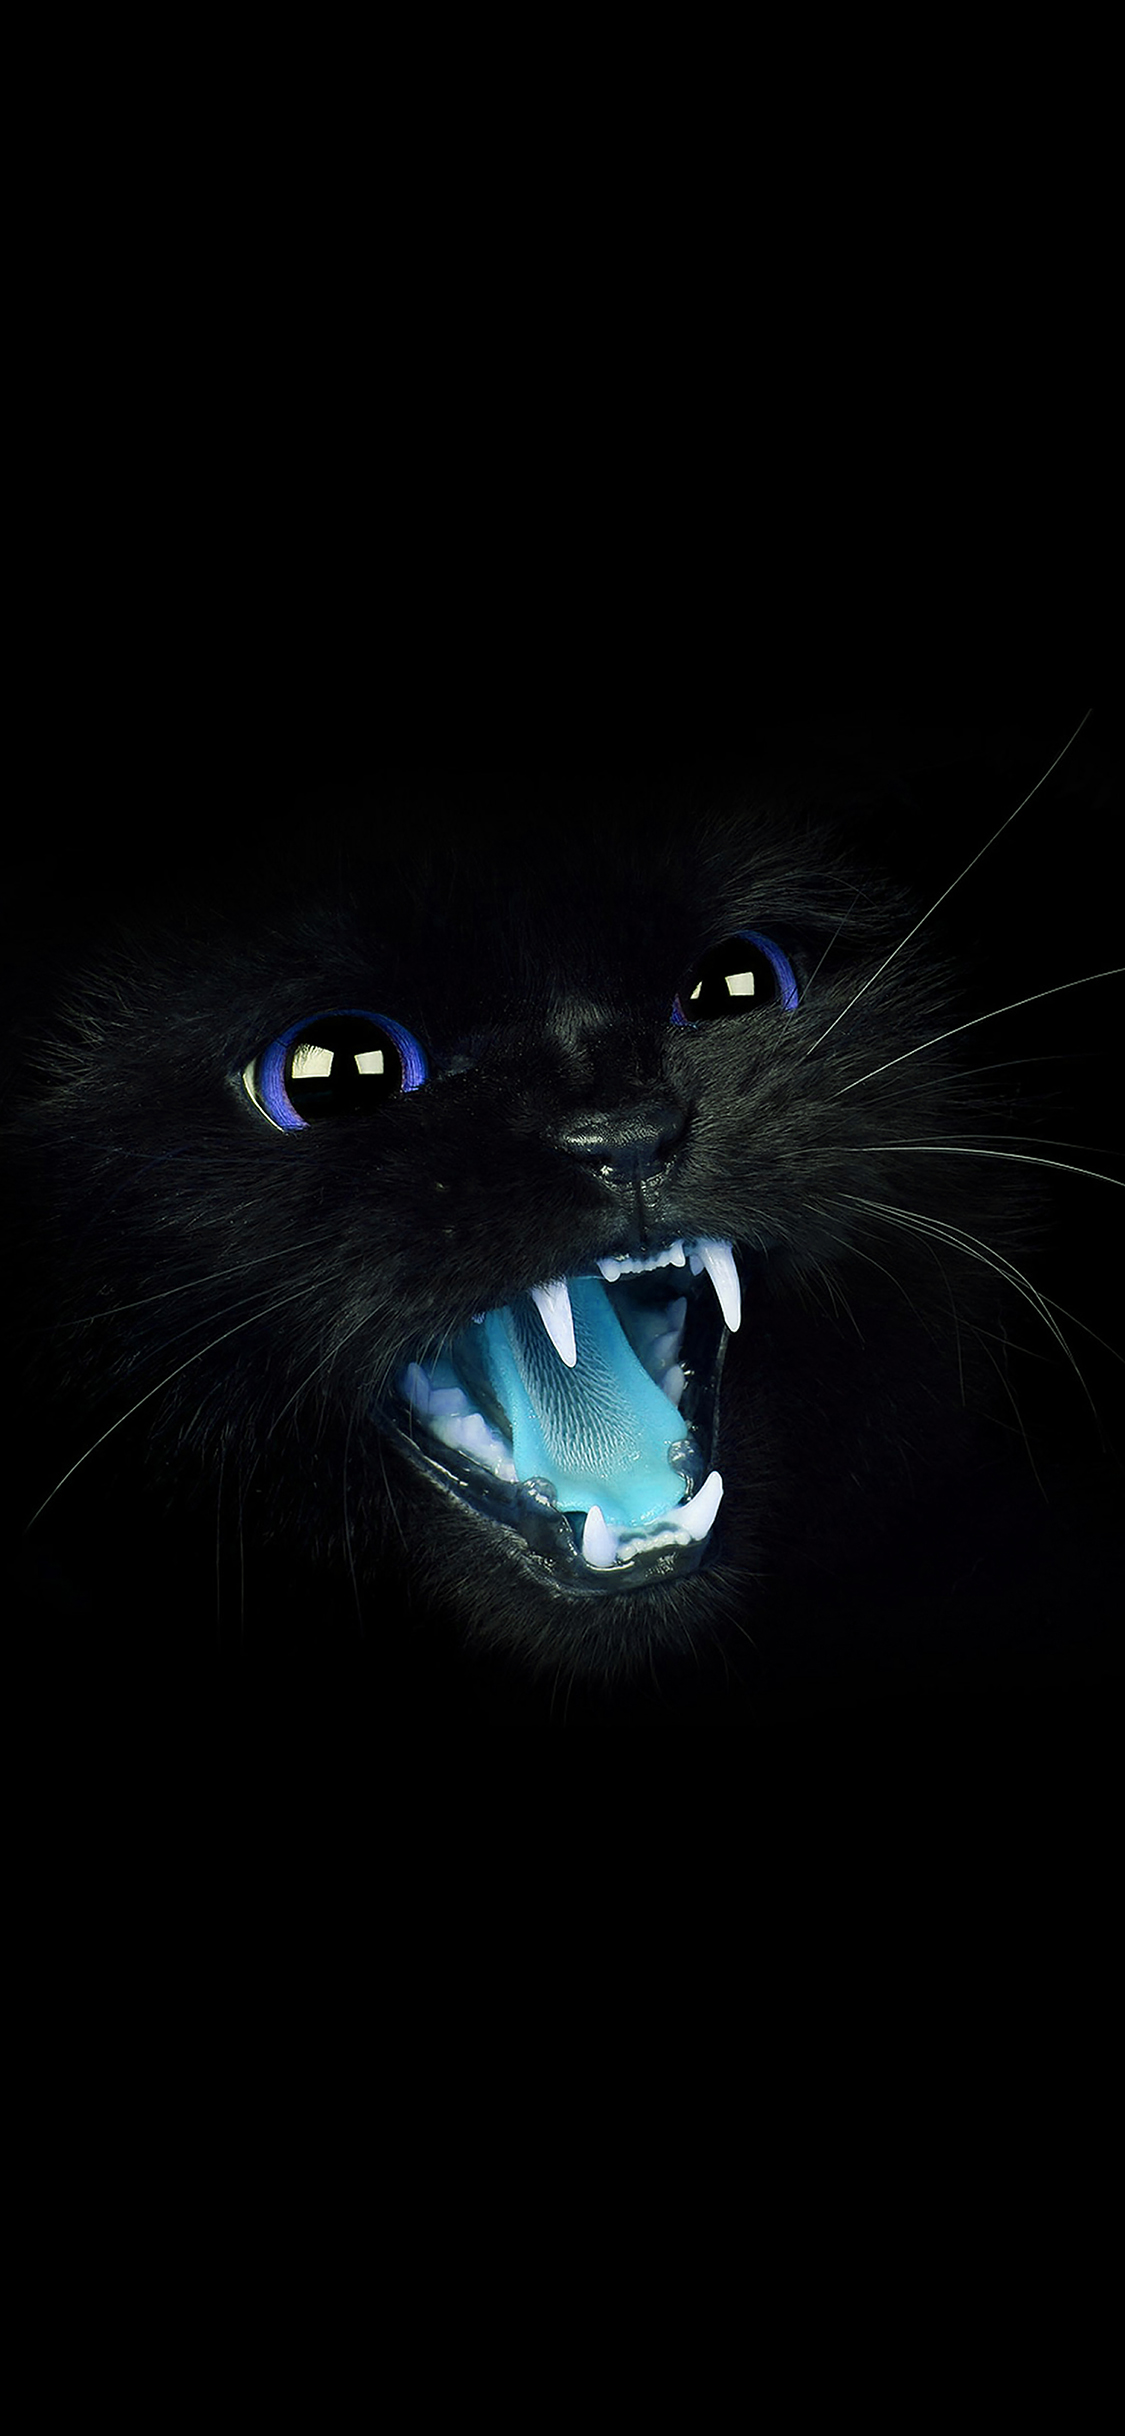 Iphonexpapers Mj55 Black Cat Blue Eye Roar Animal Cute